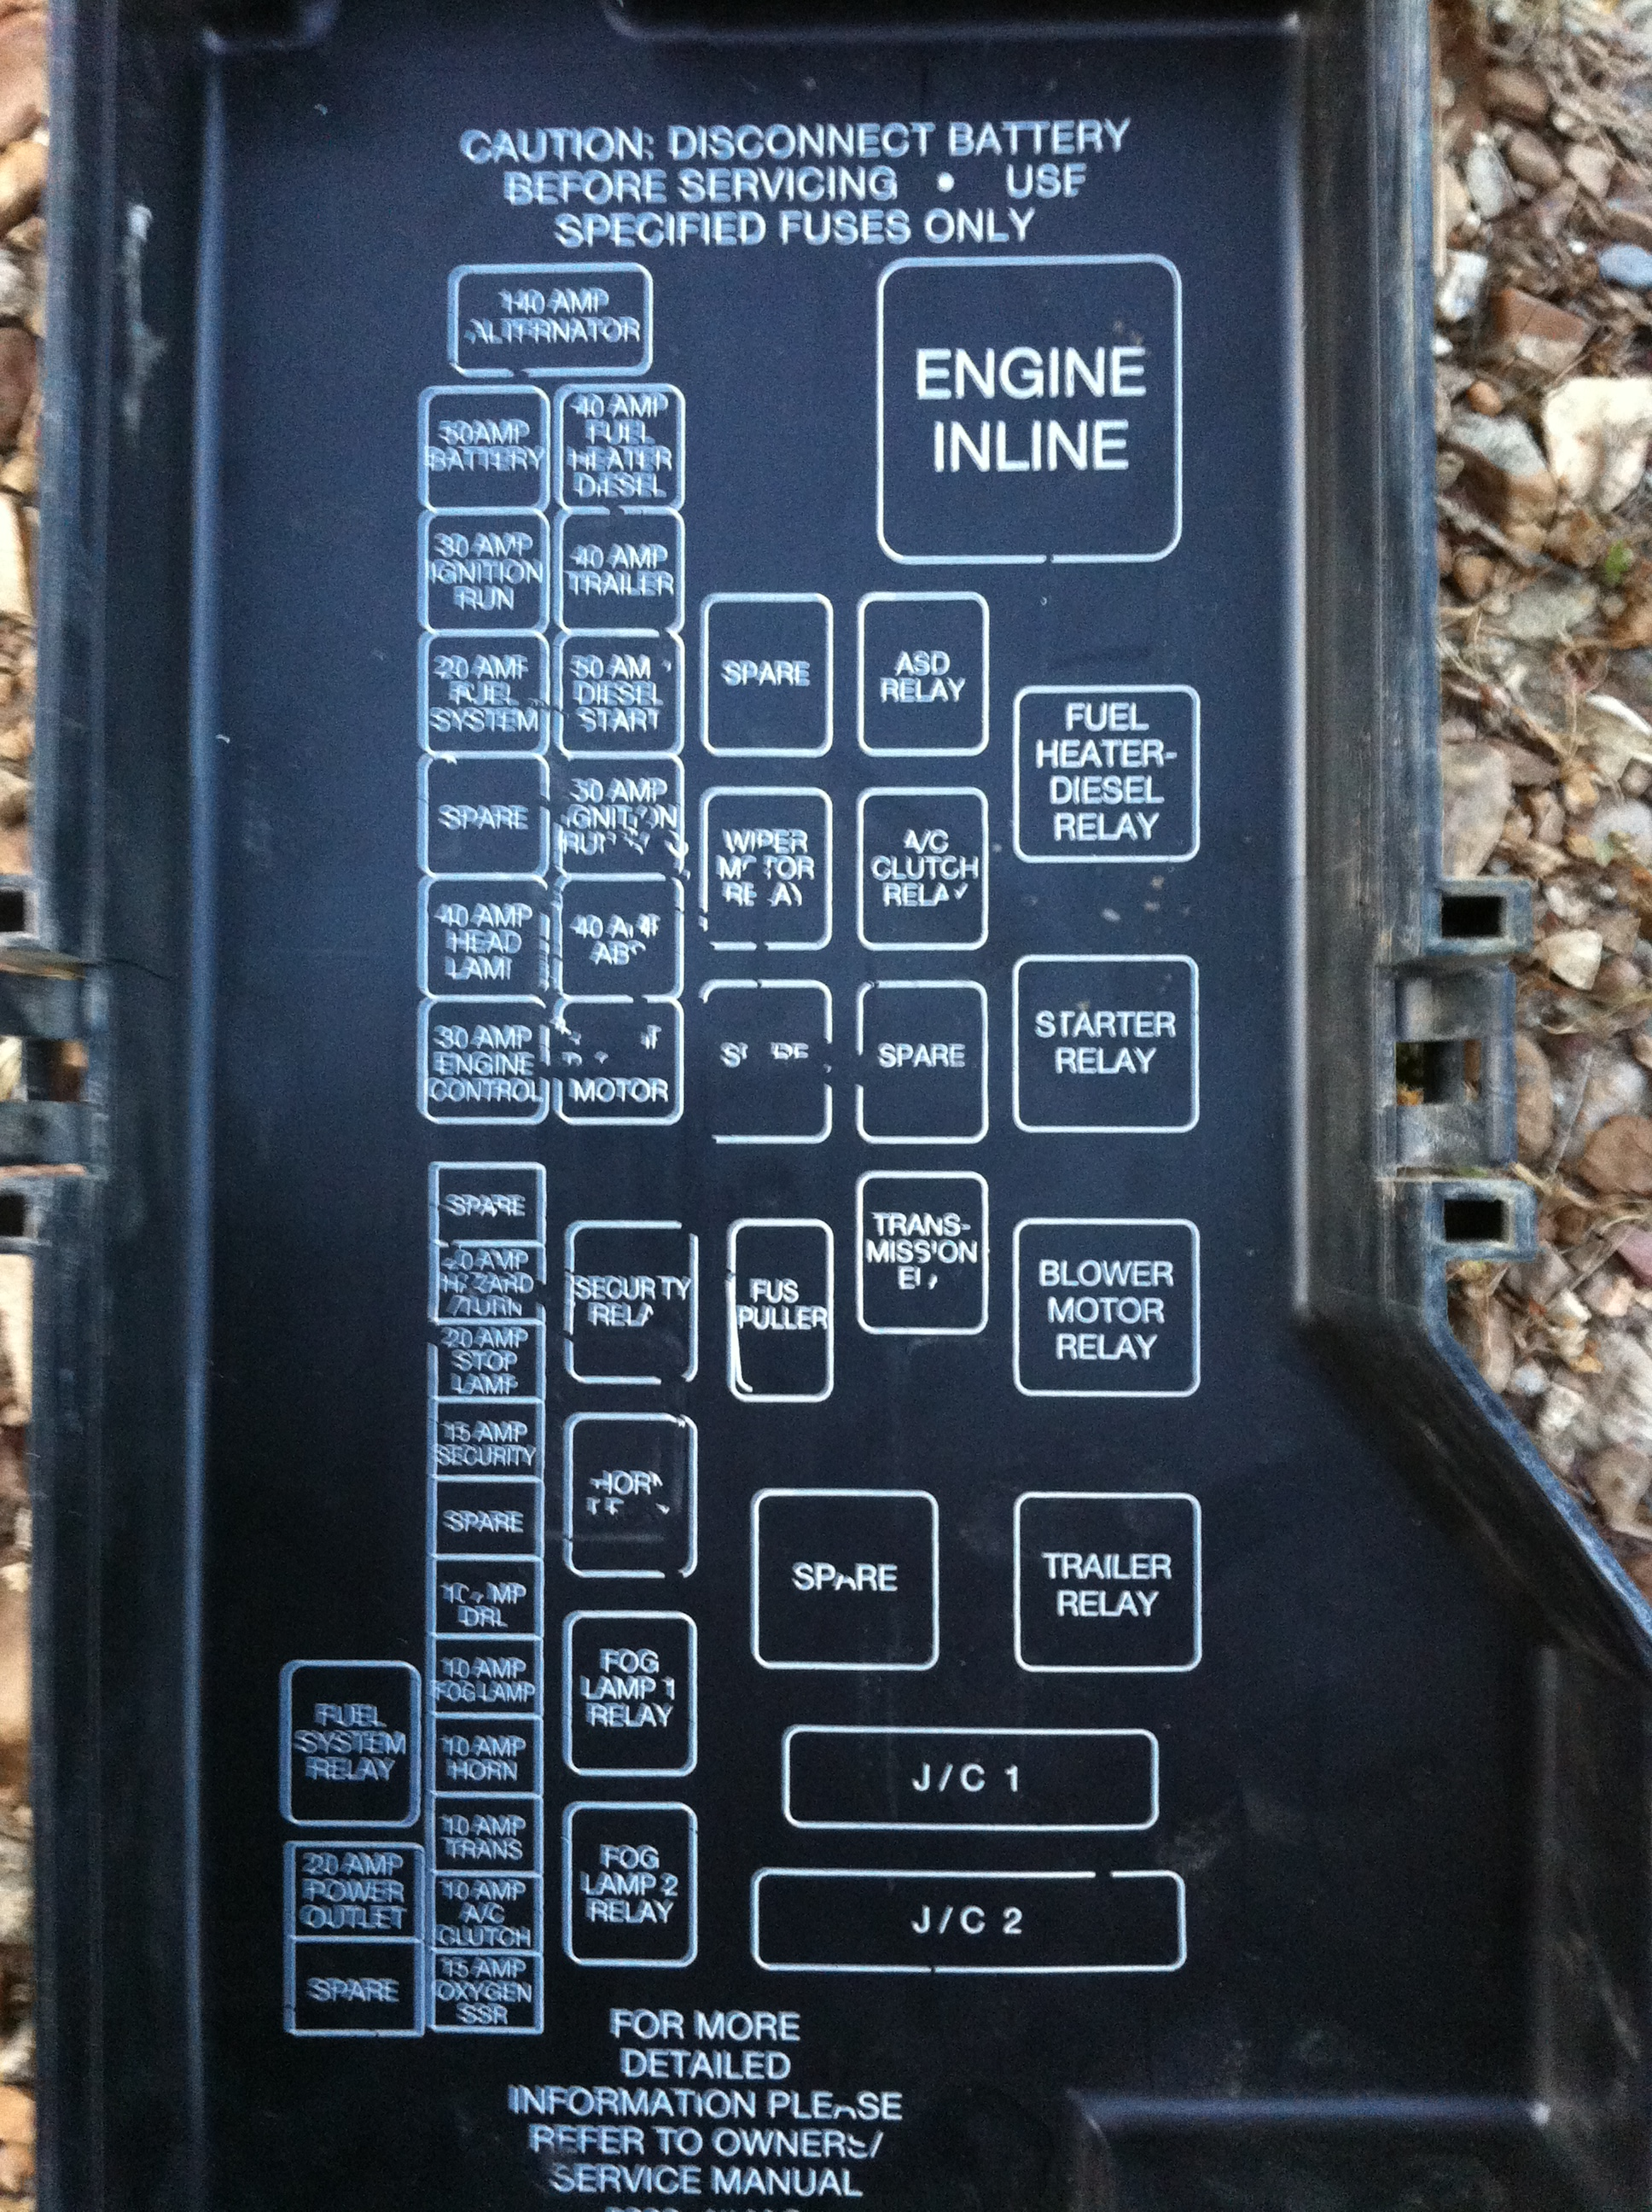 2012 05 22_134436_006 i have a 98 ram 2500 with cummins engine, when i turn the key to dodge ram fuse box diagram at mifinder.co